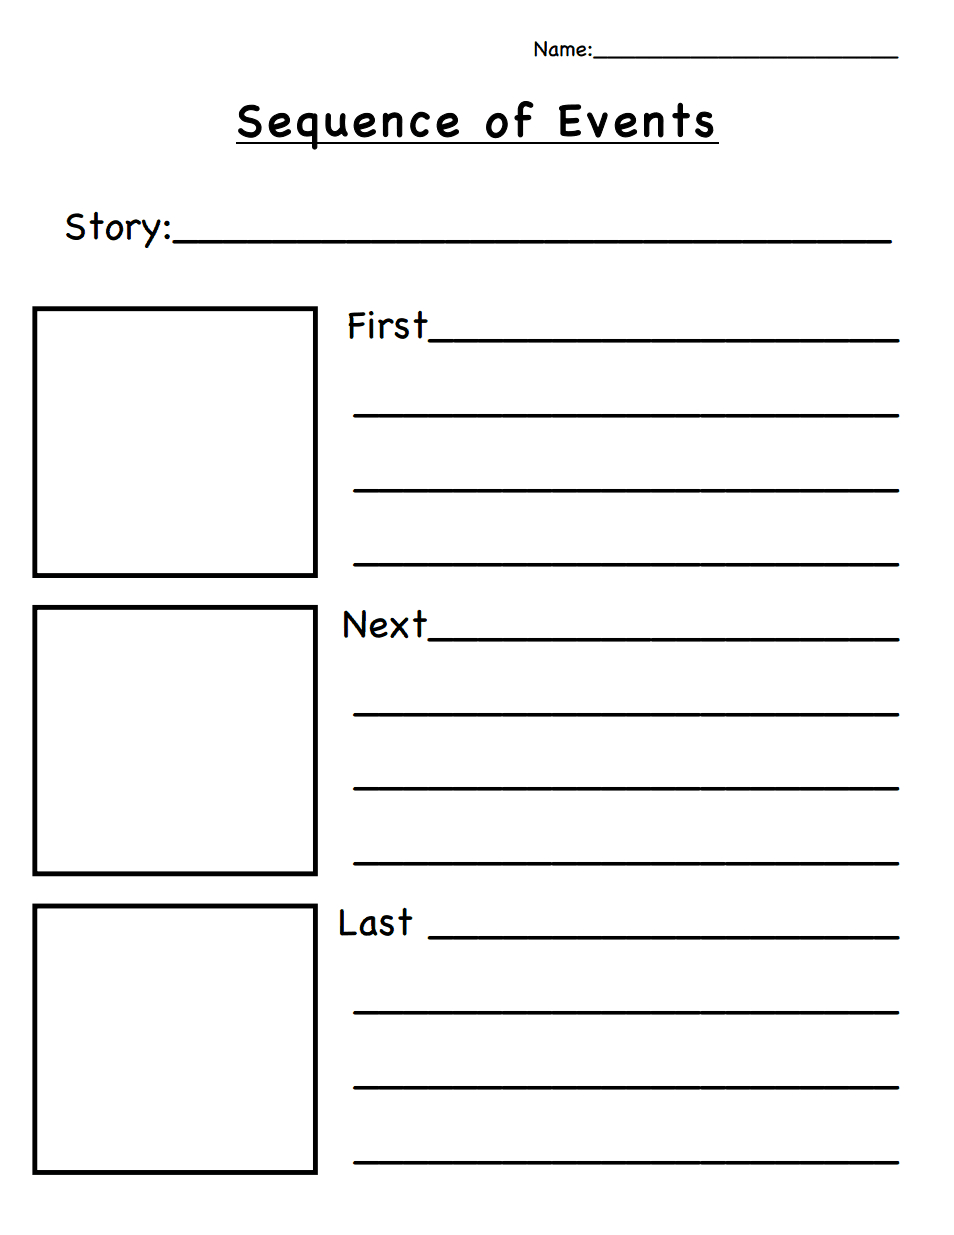 Sequence Of Events.pdf | Classroom Ideas | Sequencing Worksheets - Free Printable Sequence Of Events Graphic Organizer